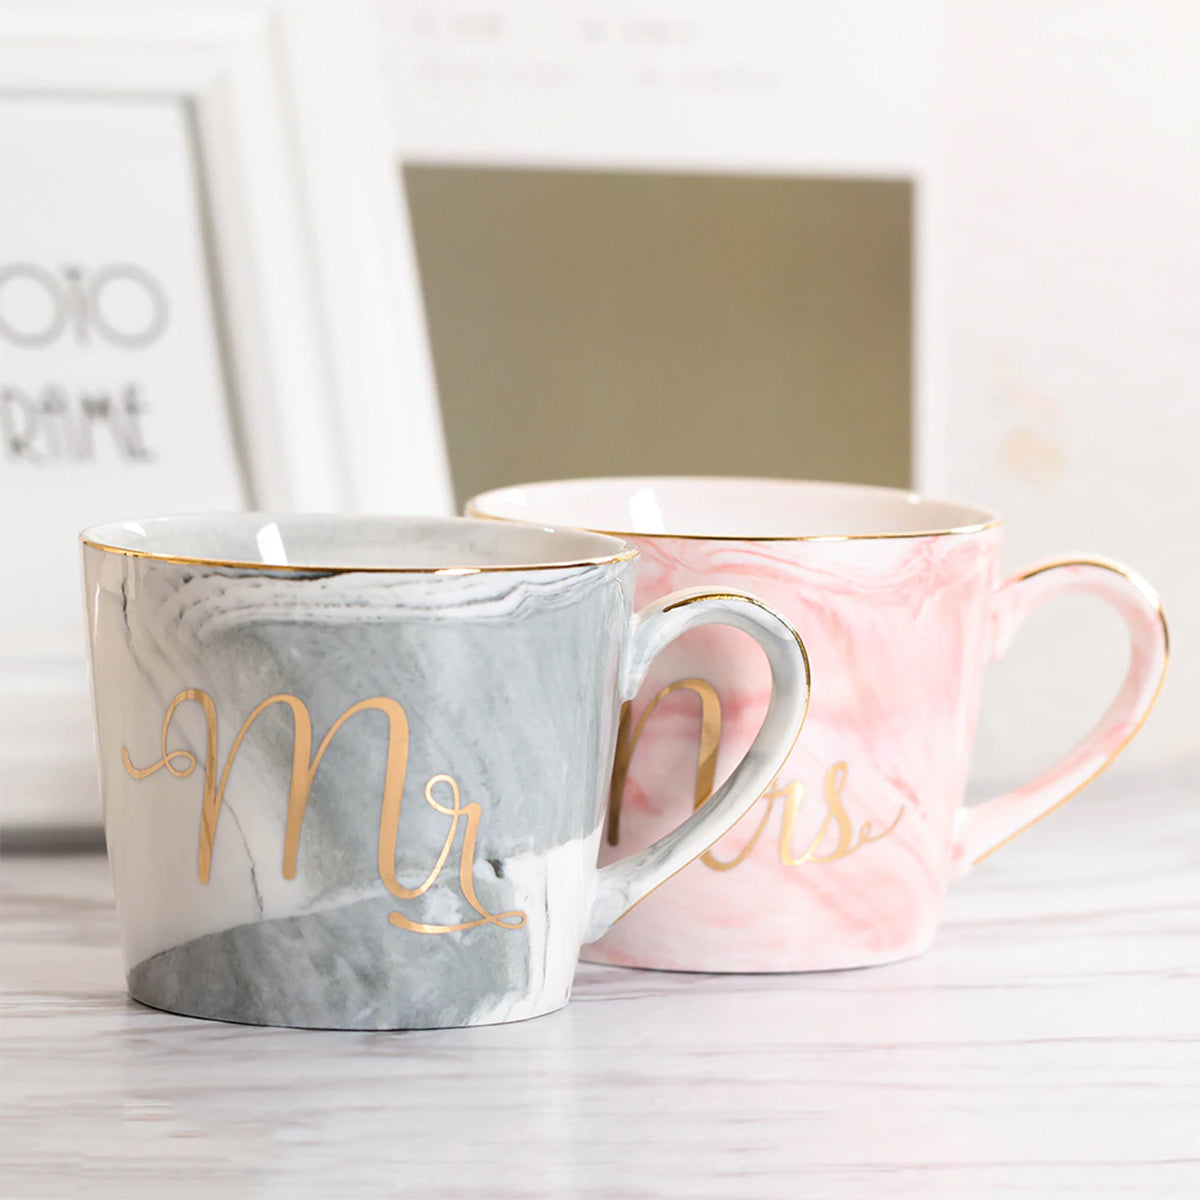 Marble Ceramic Mr & Mrs Coffee Mugs